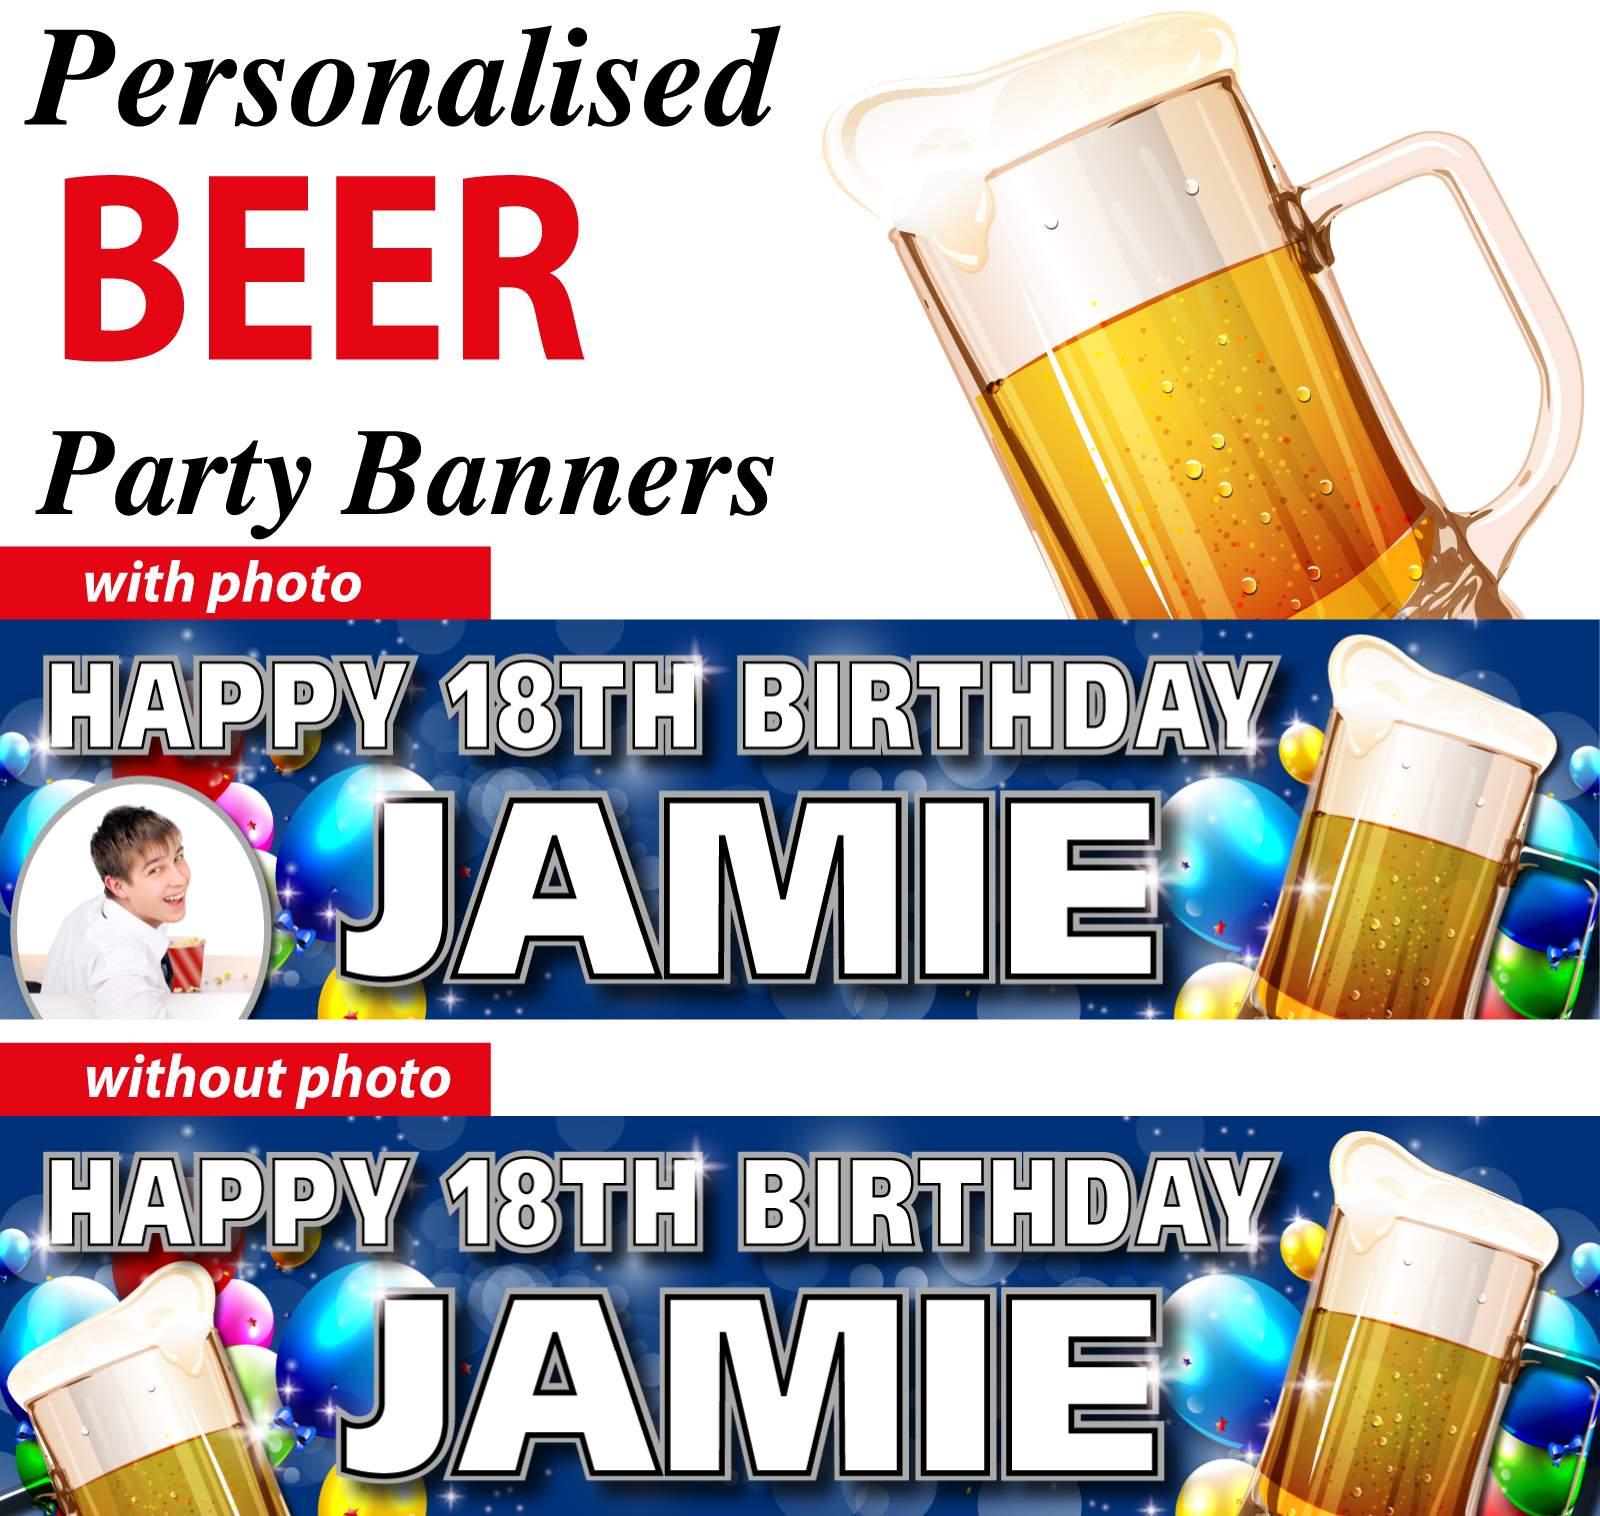 beer-birthday-banner-ebay.jpg